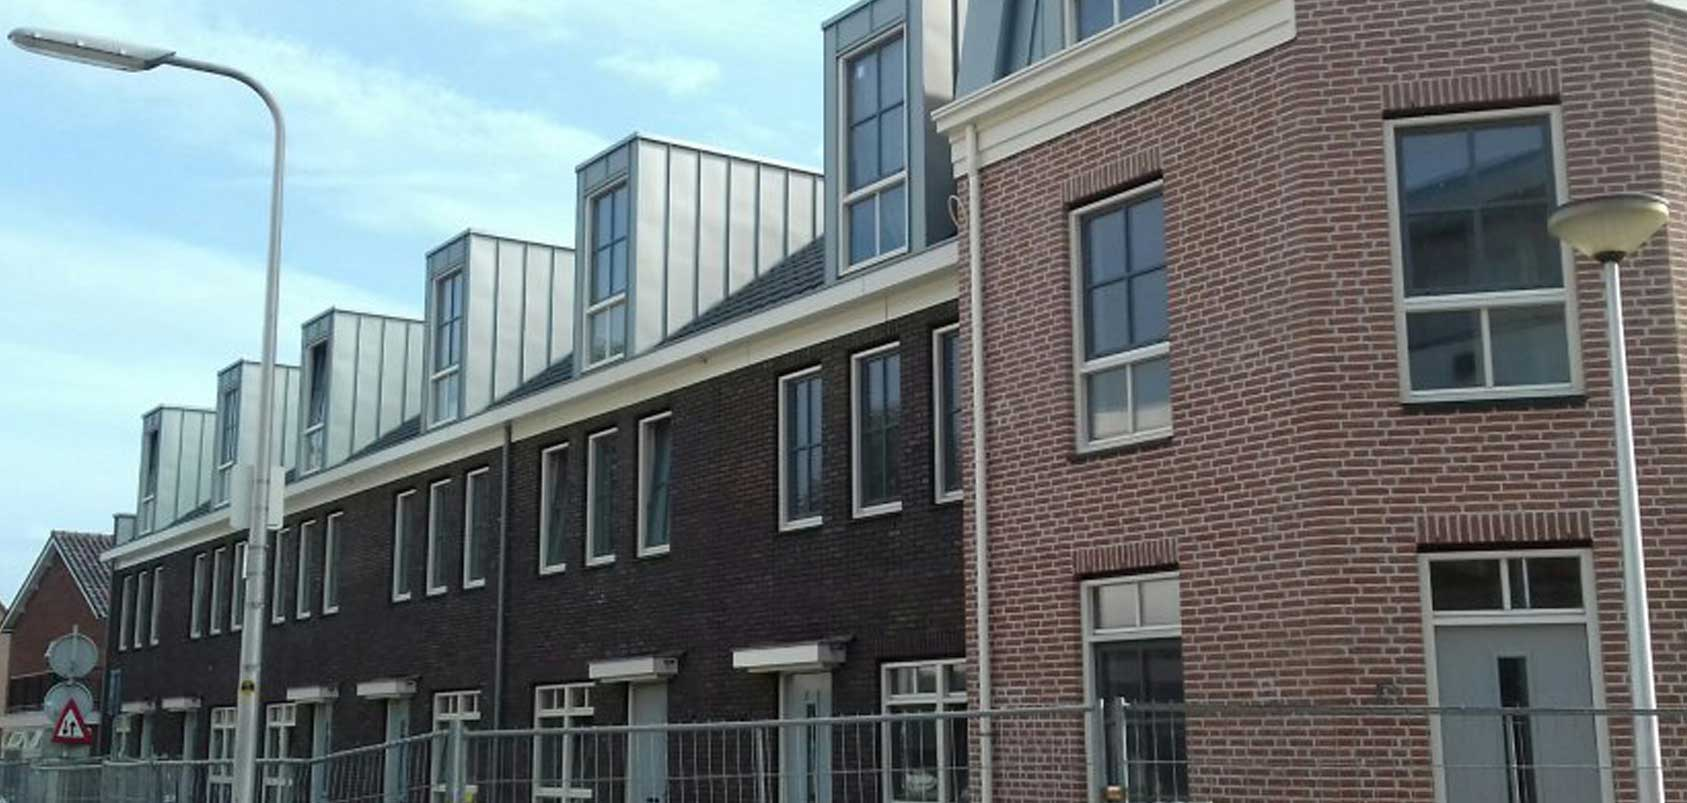 The Triangel Alphen a/d Rijn